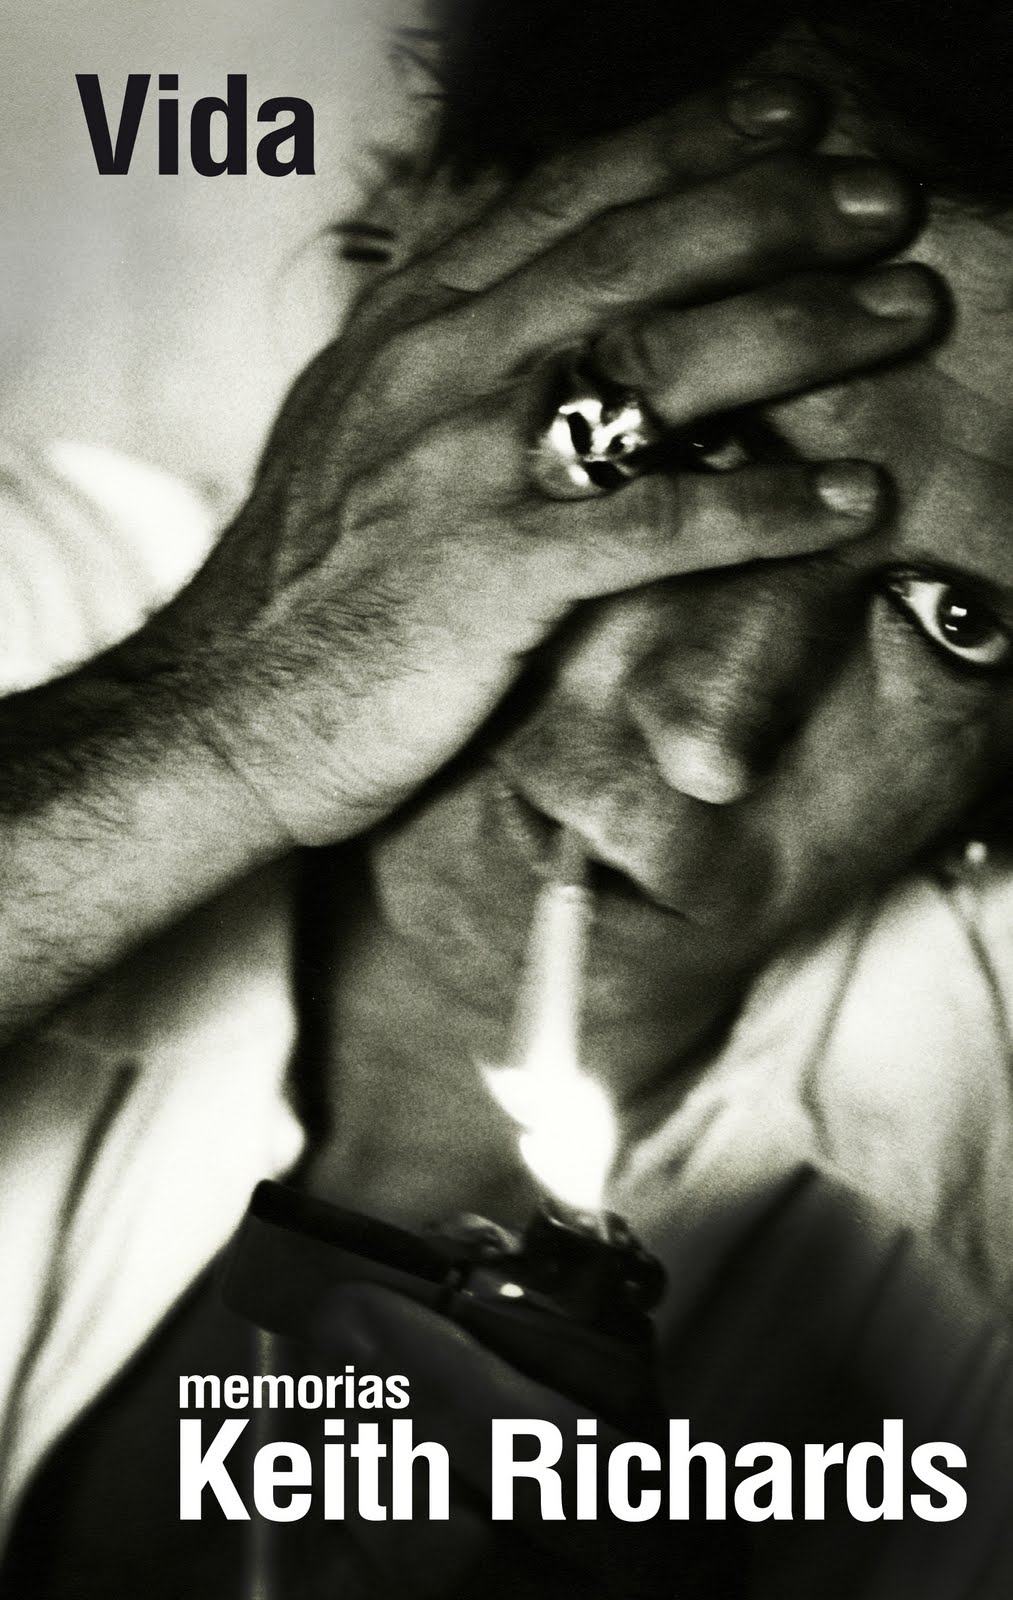 Vida, Memorias Keith Richards 2010